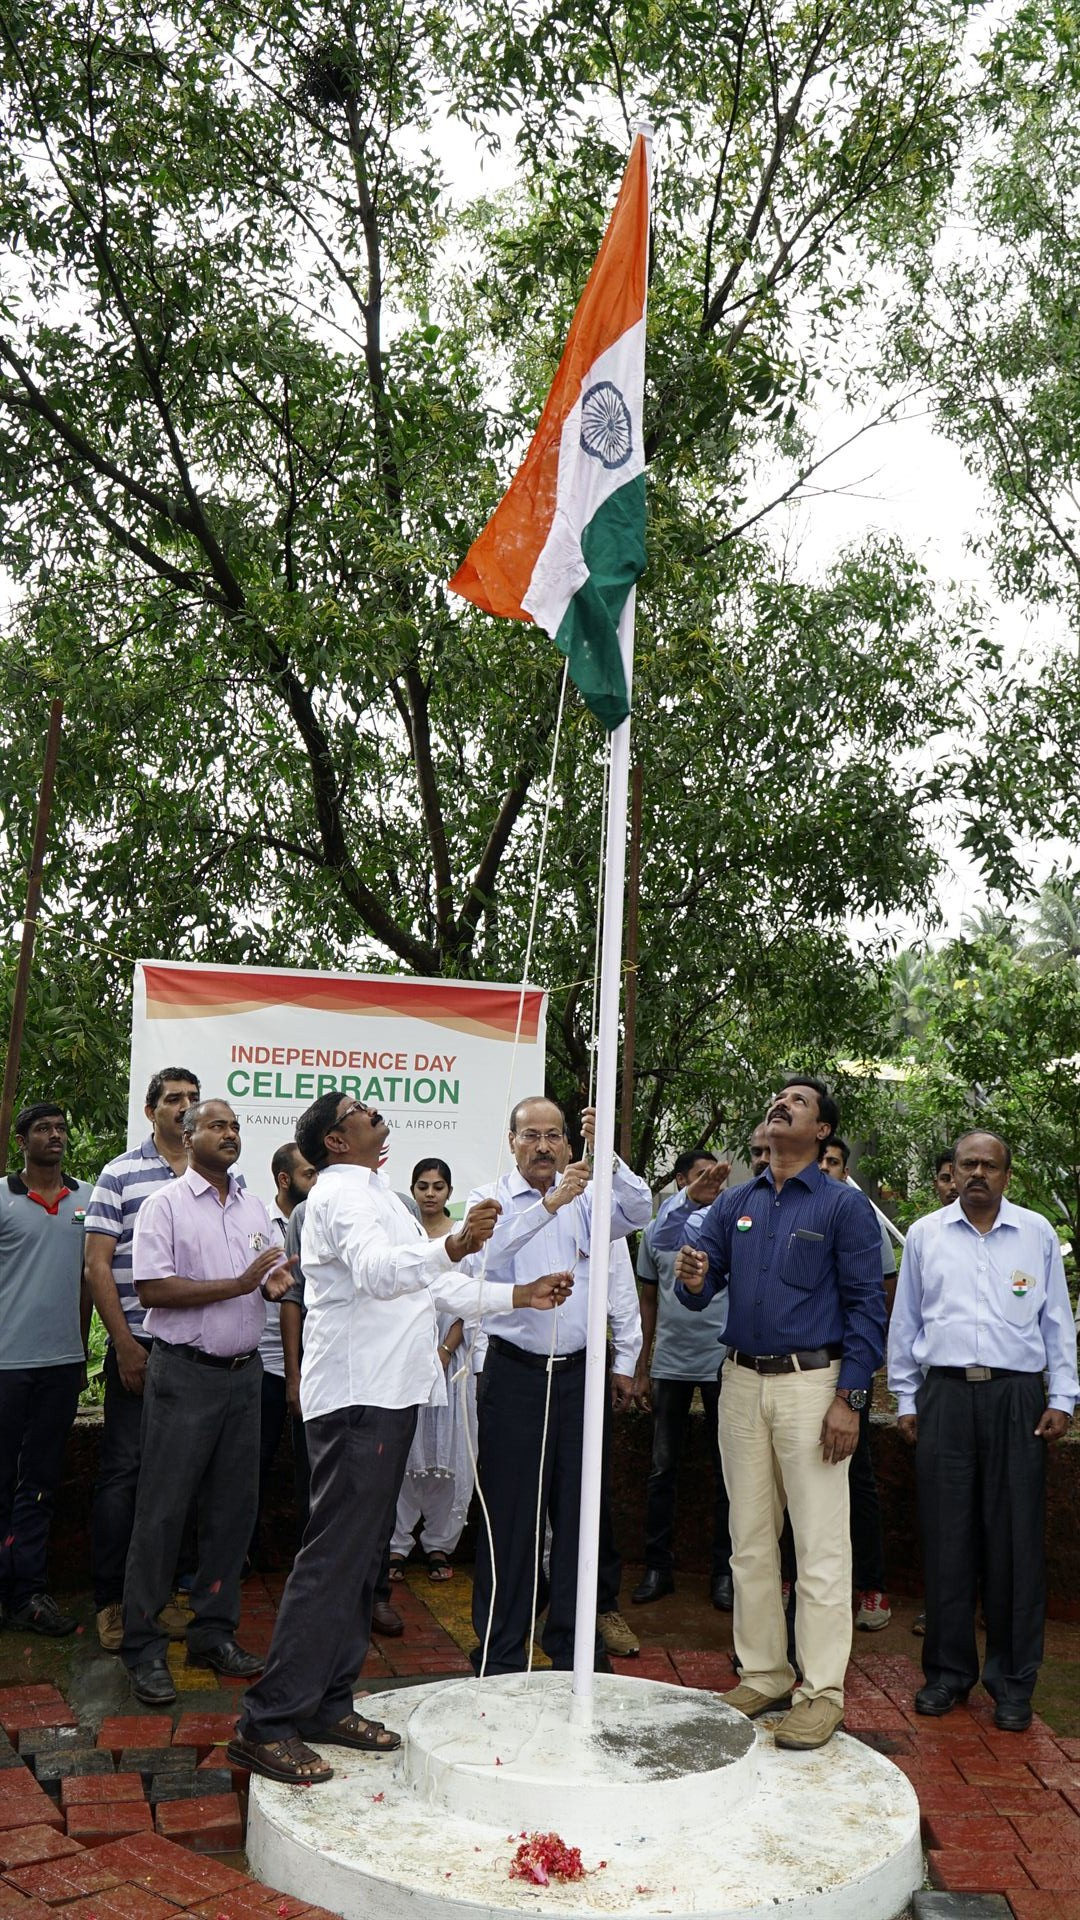 Kannur Airport Year 2018 Independence Day Celebration